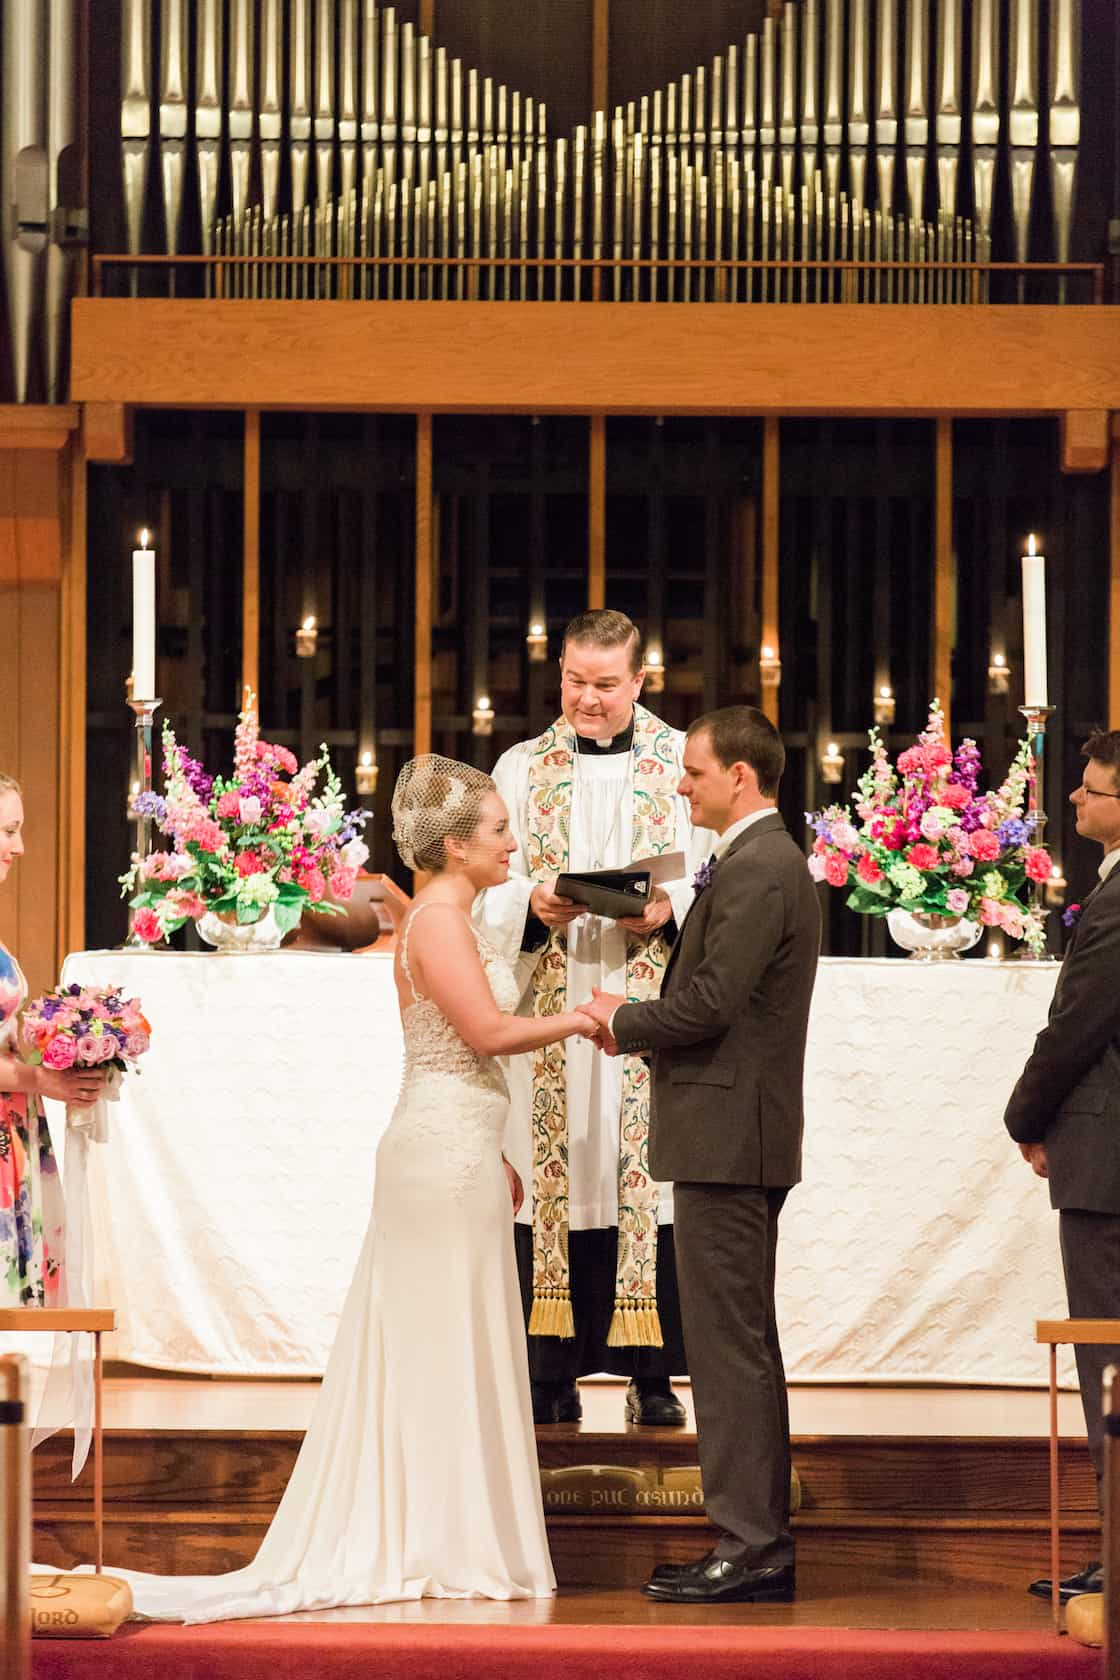 Wedding Ceremony at Church with Tall Organ Pipes